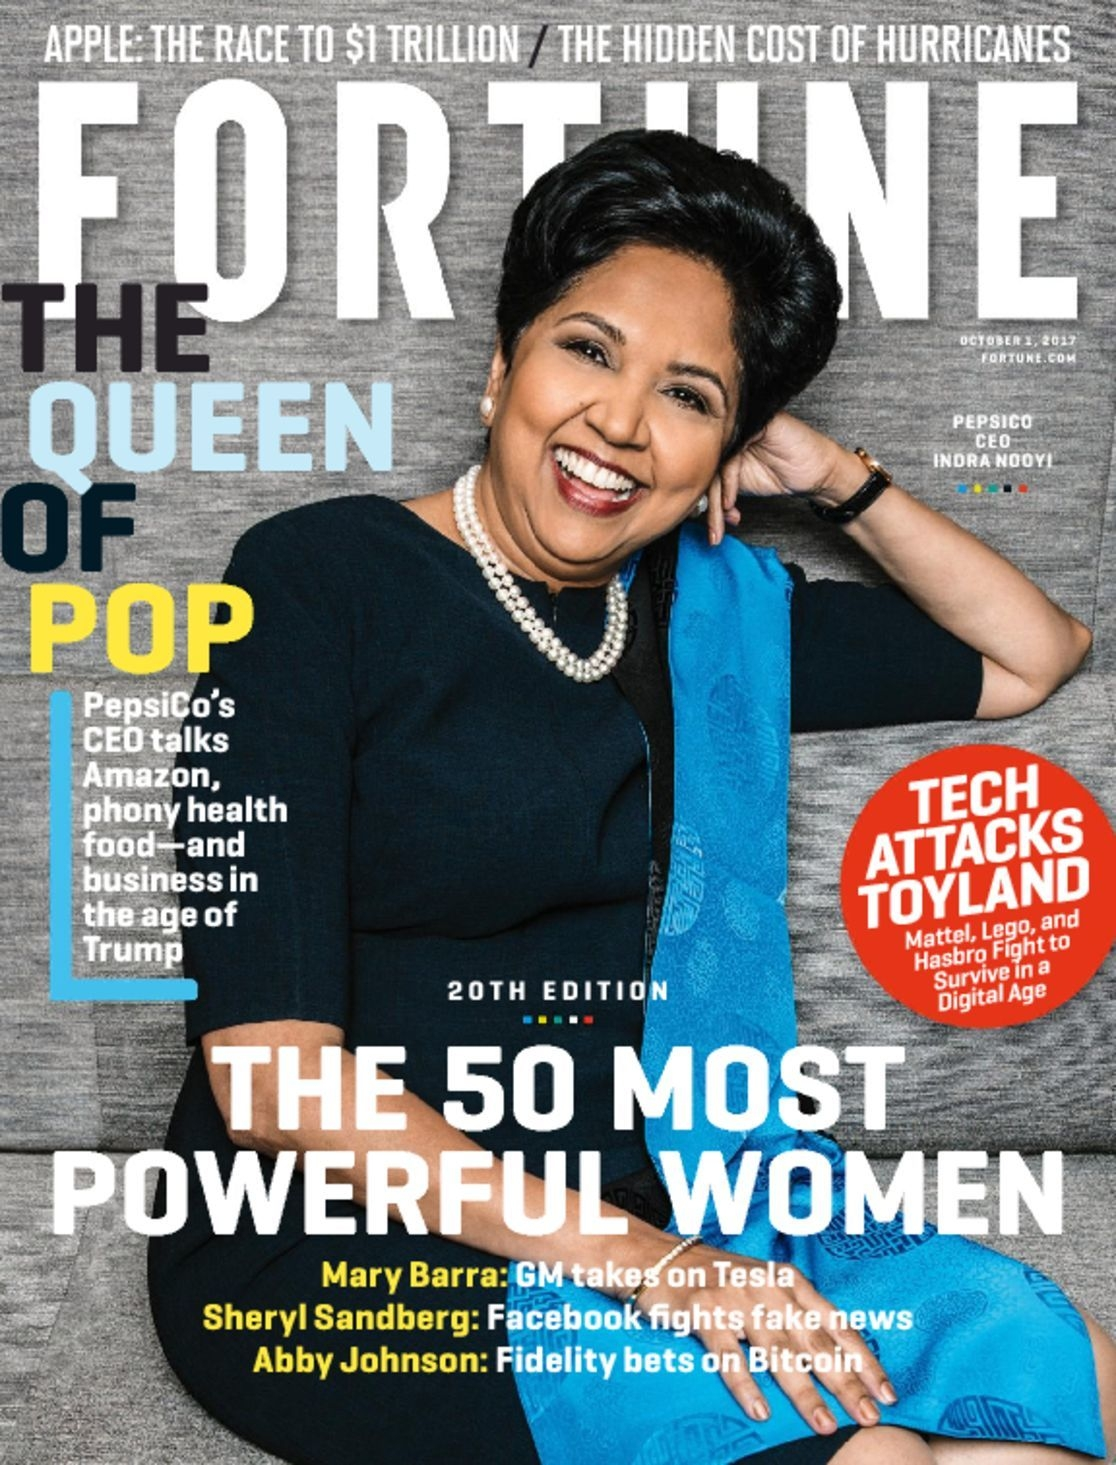 50640-fortune-Cover-2017-October-1-Issue.jpg